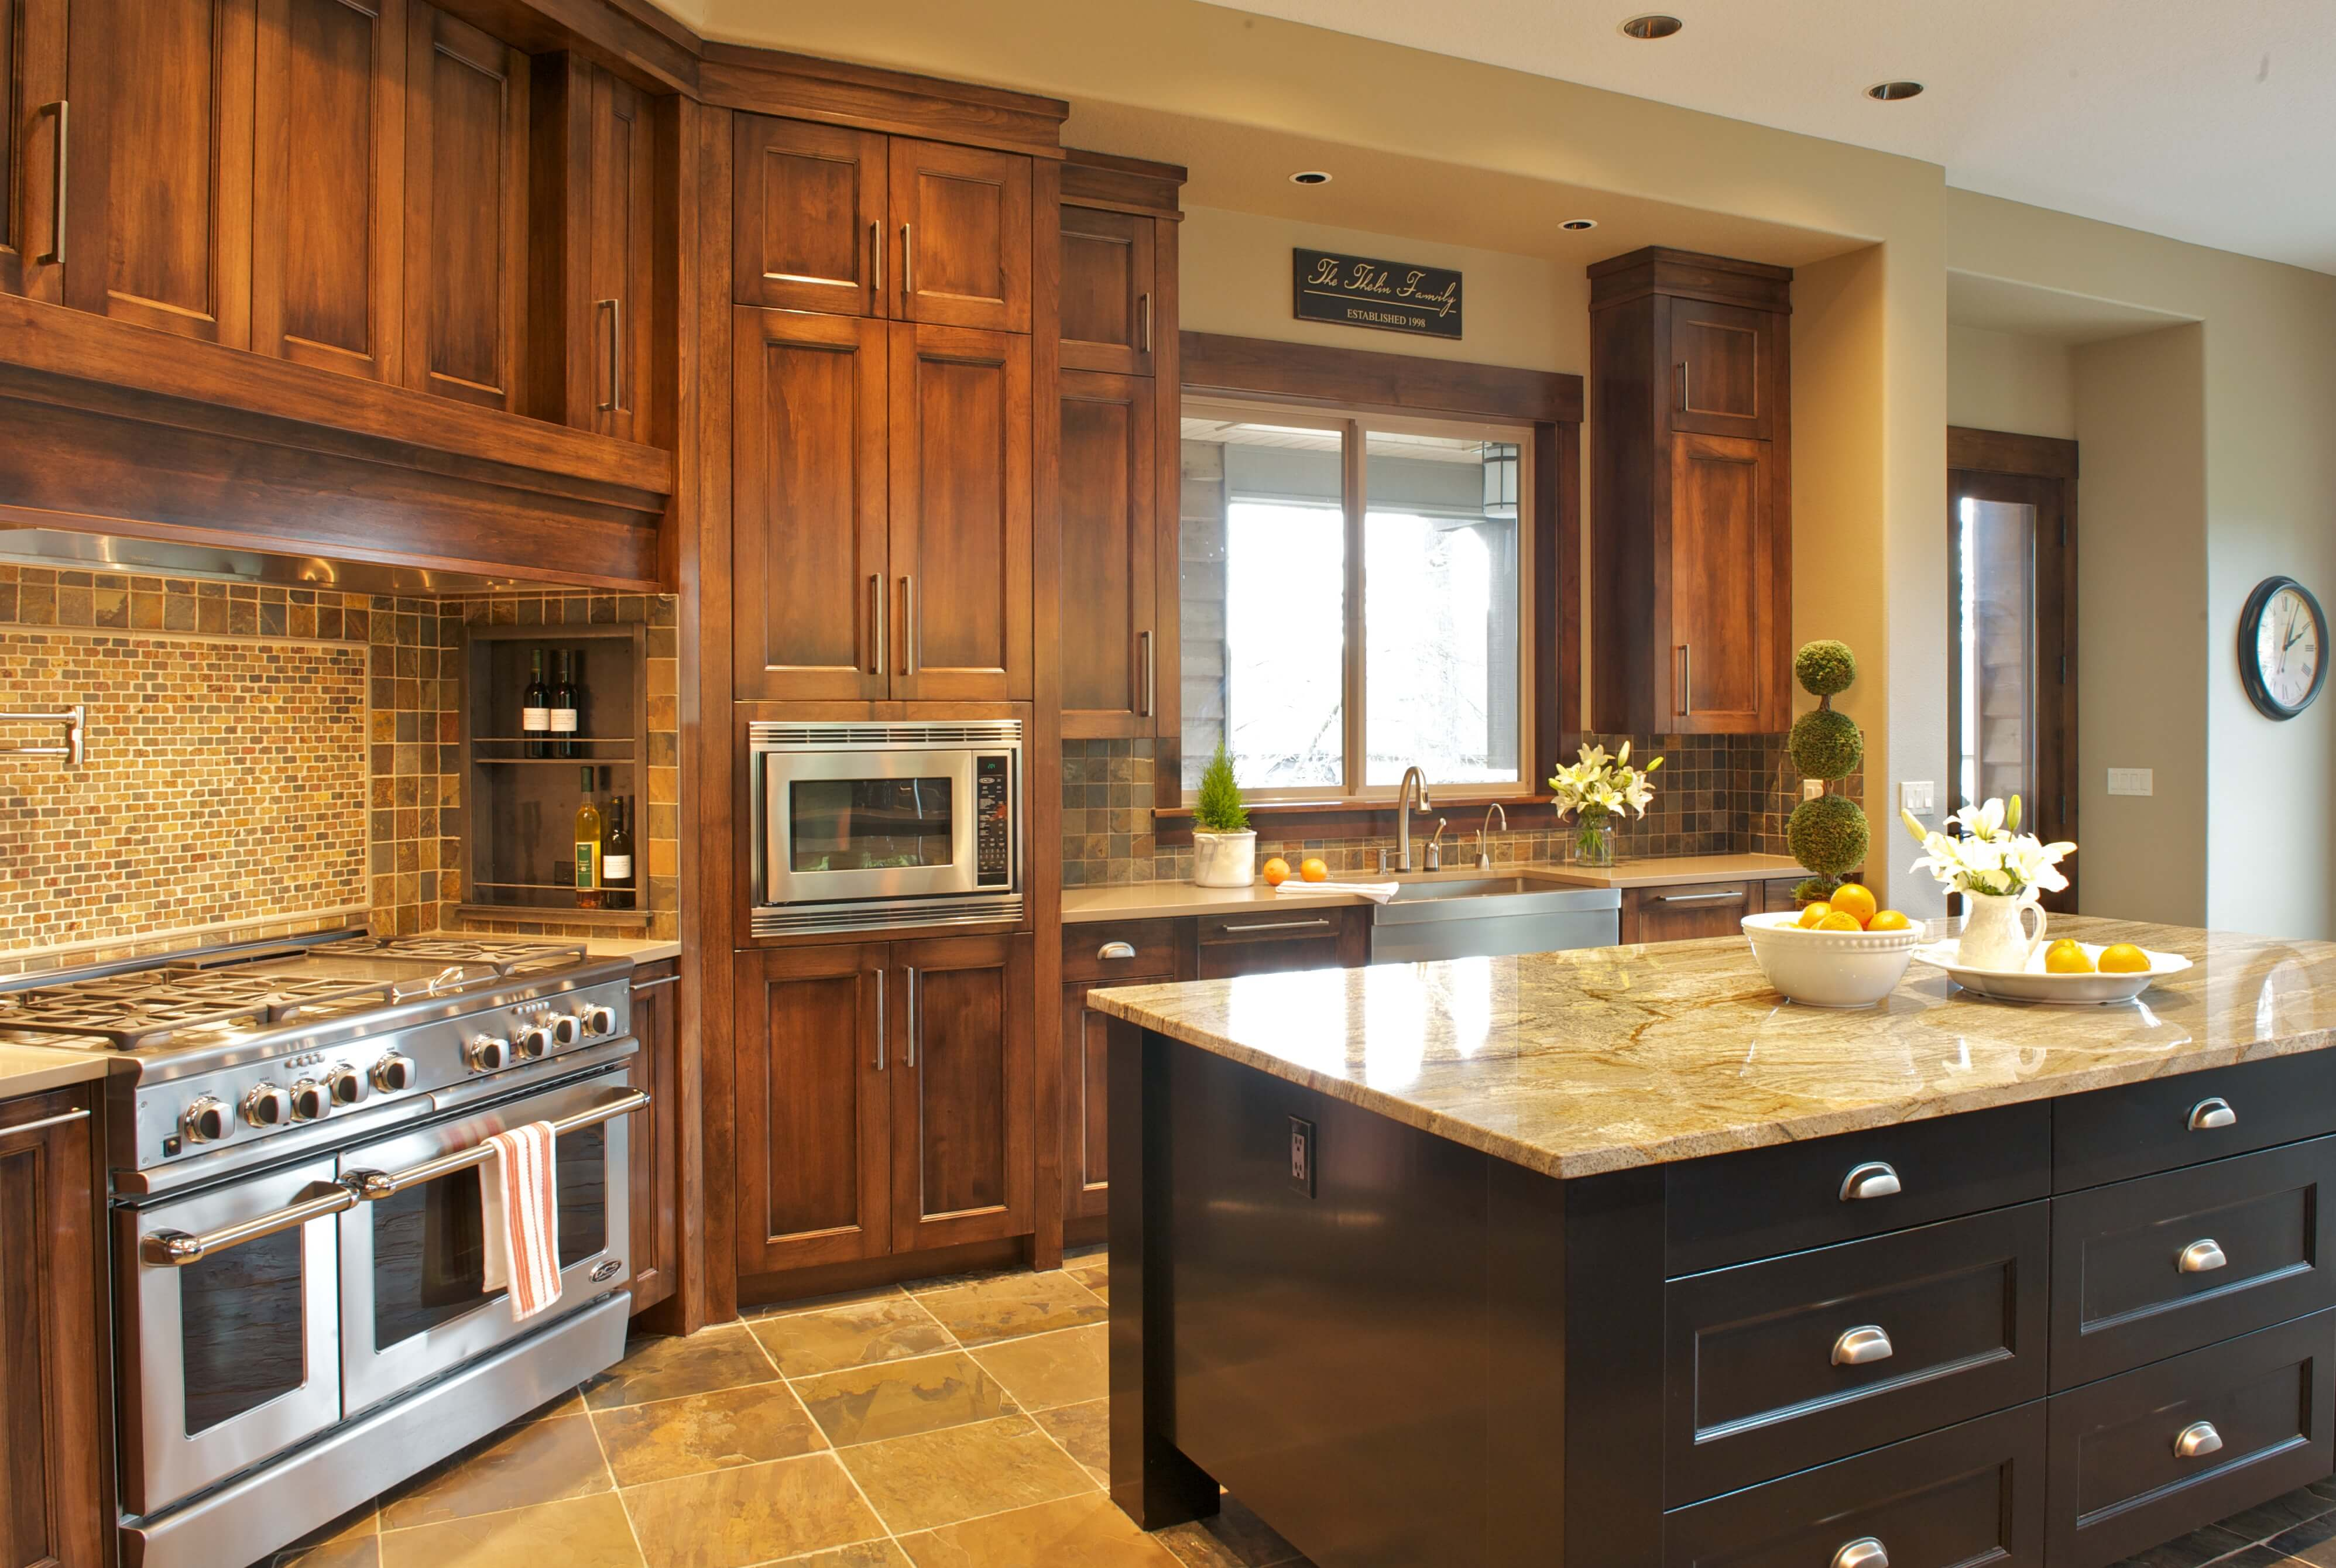 Kitchen is centered around large black island with marble countertop. Red wood cabinetry stands over earth tone tile flooring with patterned tile backsplash for warm look.